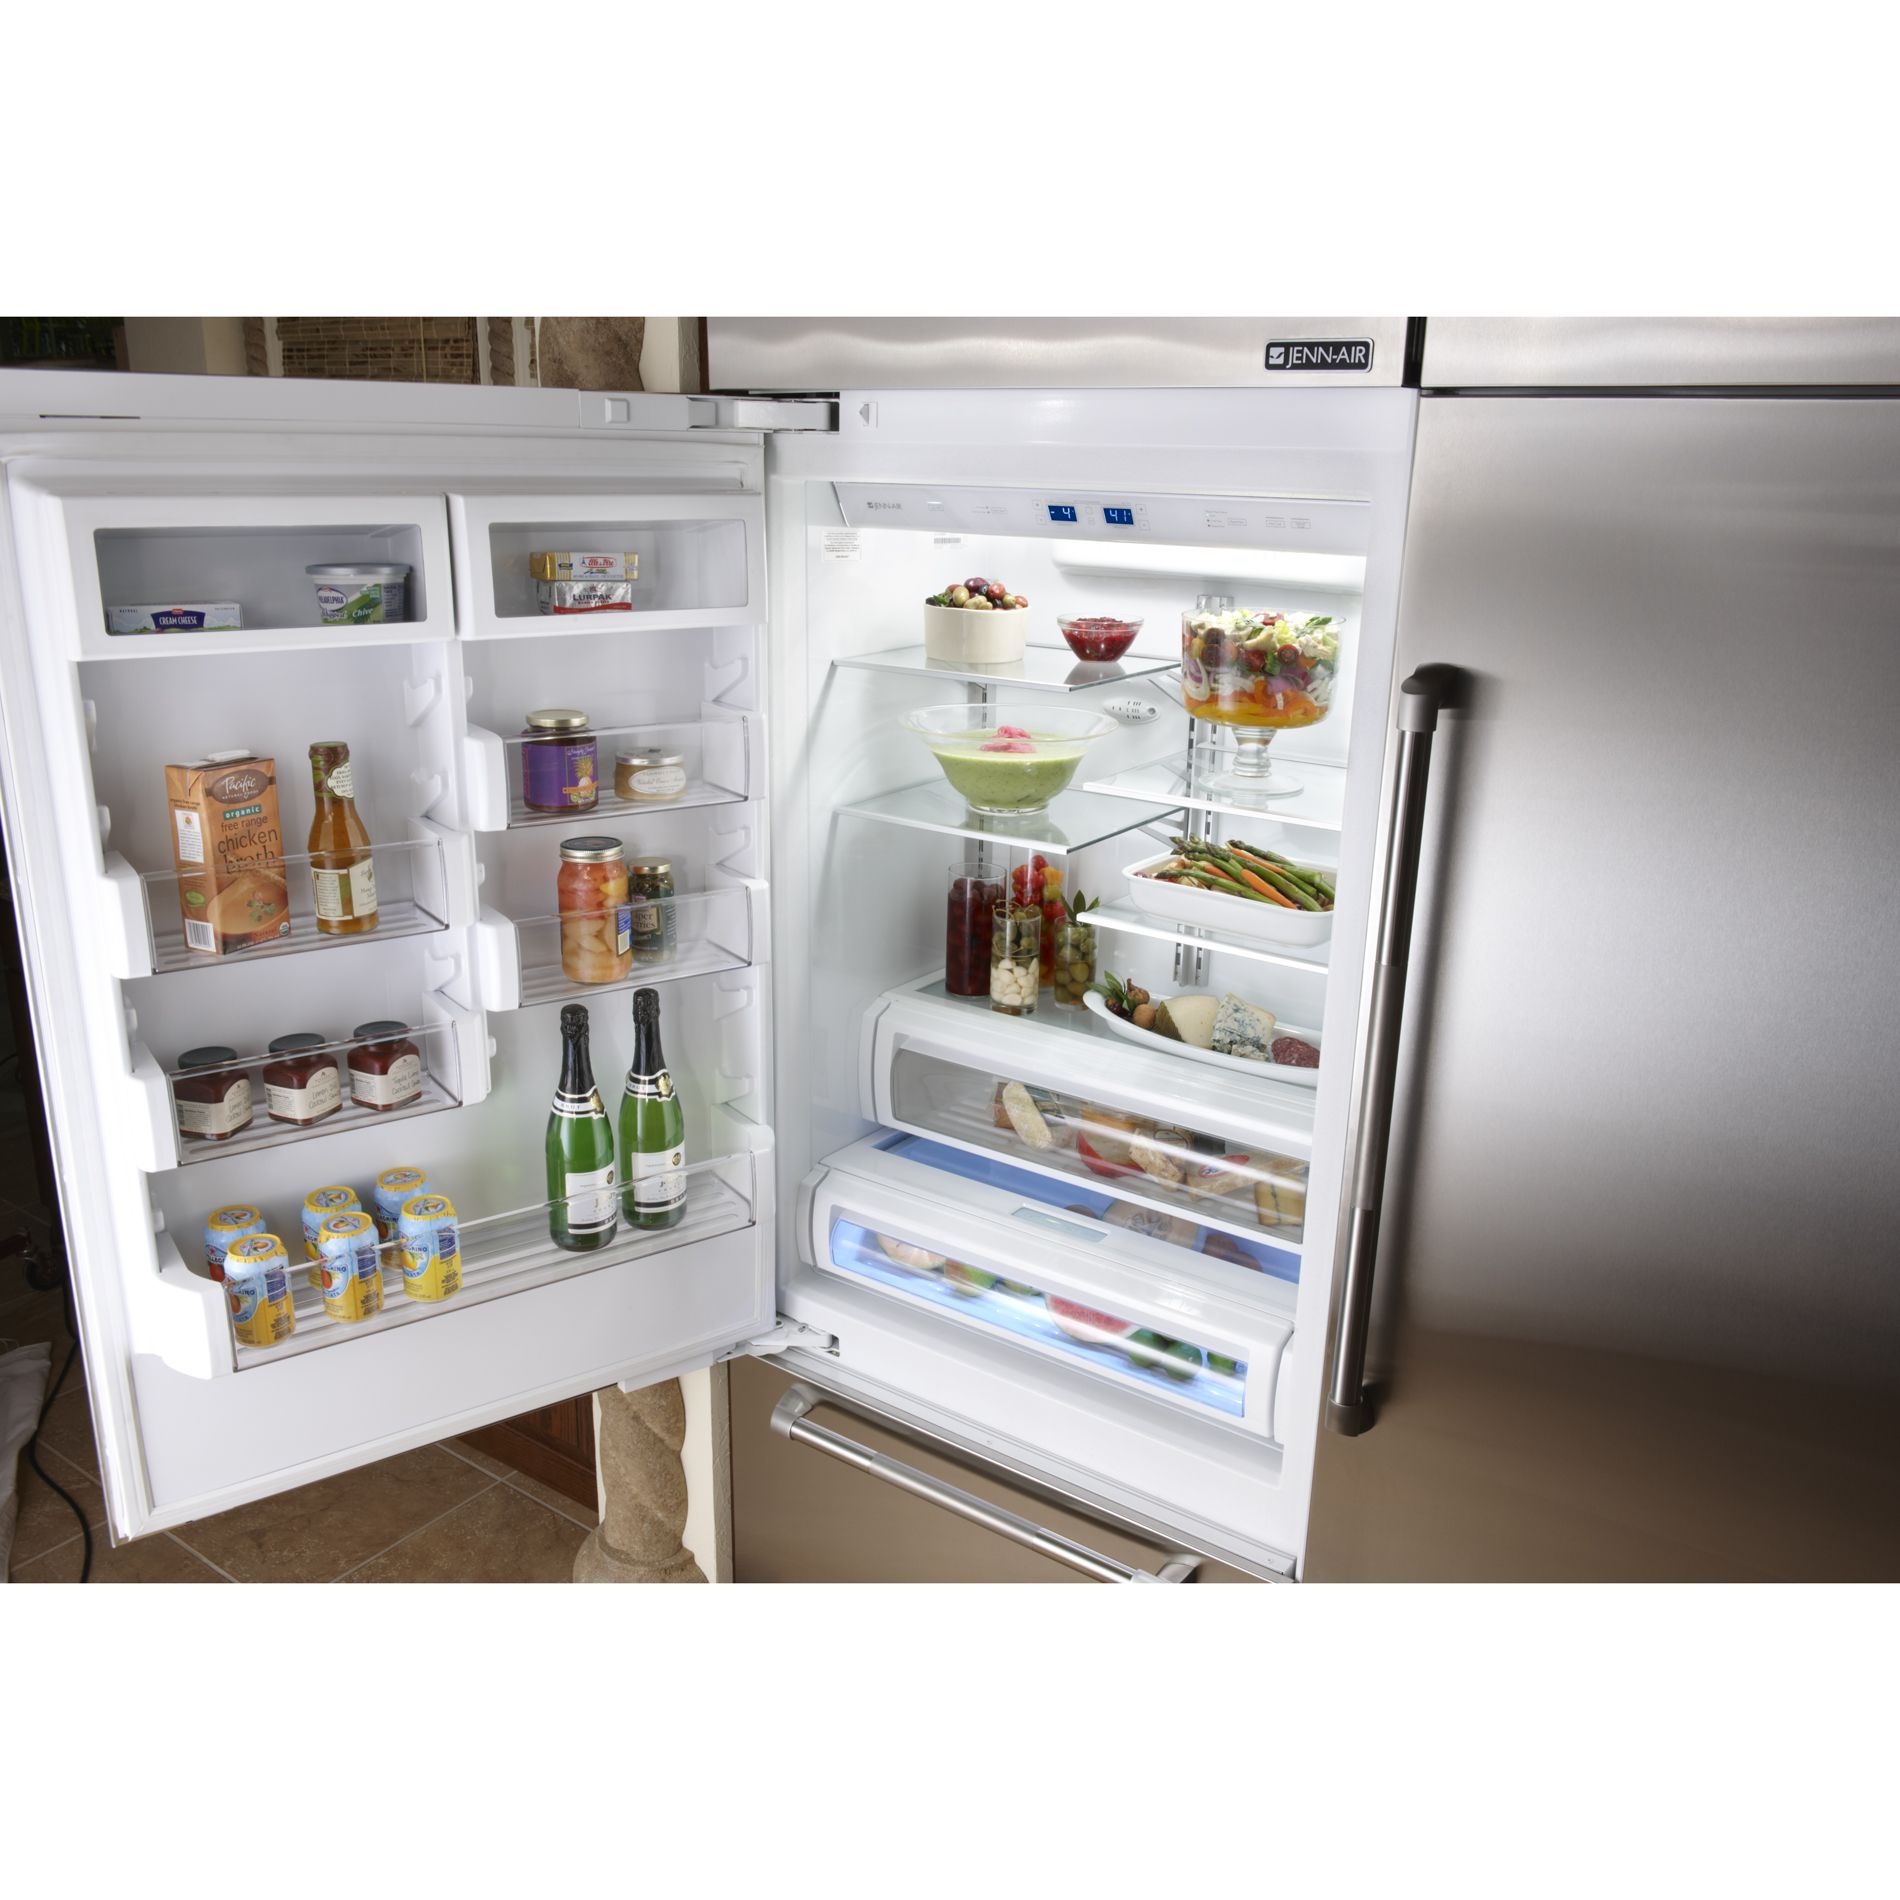 Jenn-Air 20.4 cu. ft. Fully Integrated Built-In Bottom Freezer Refrigerator